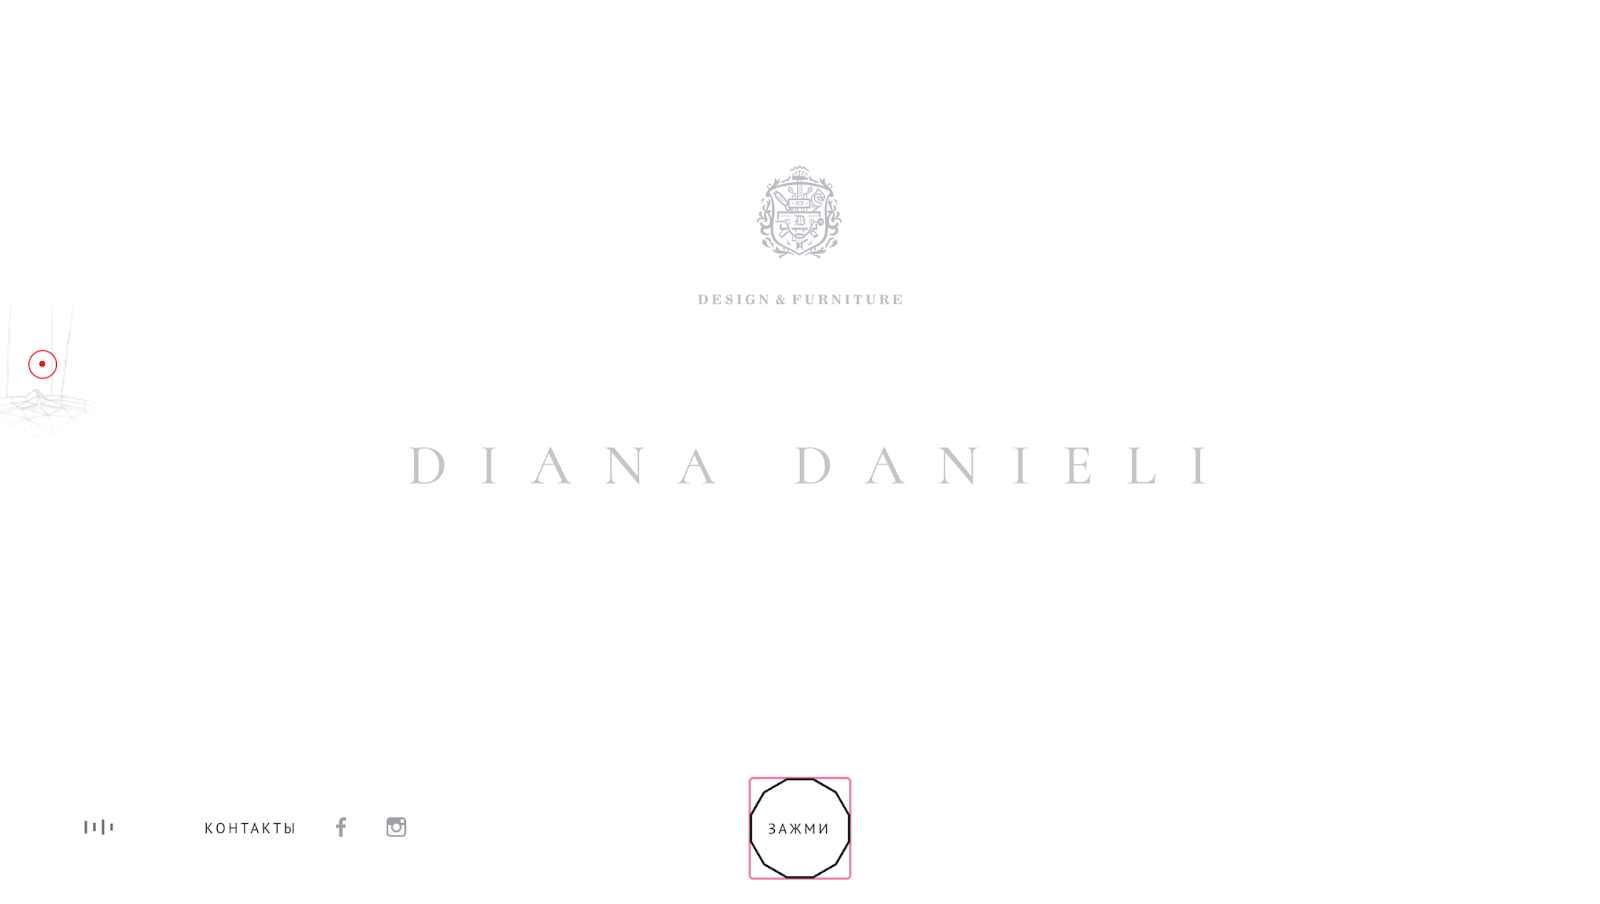 diana danieli best website design award winner 2019